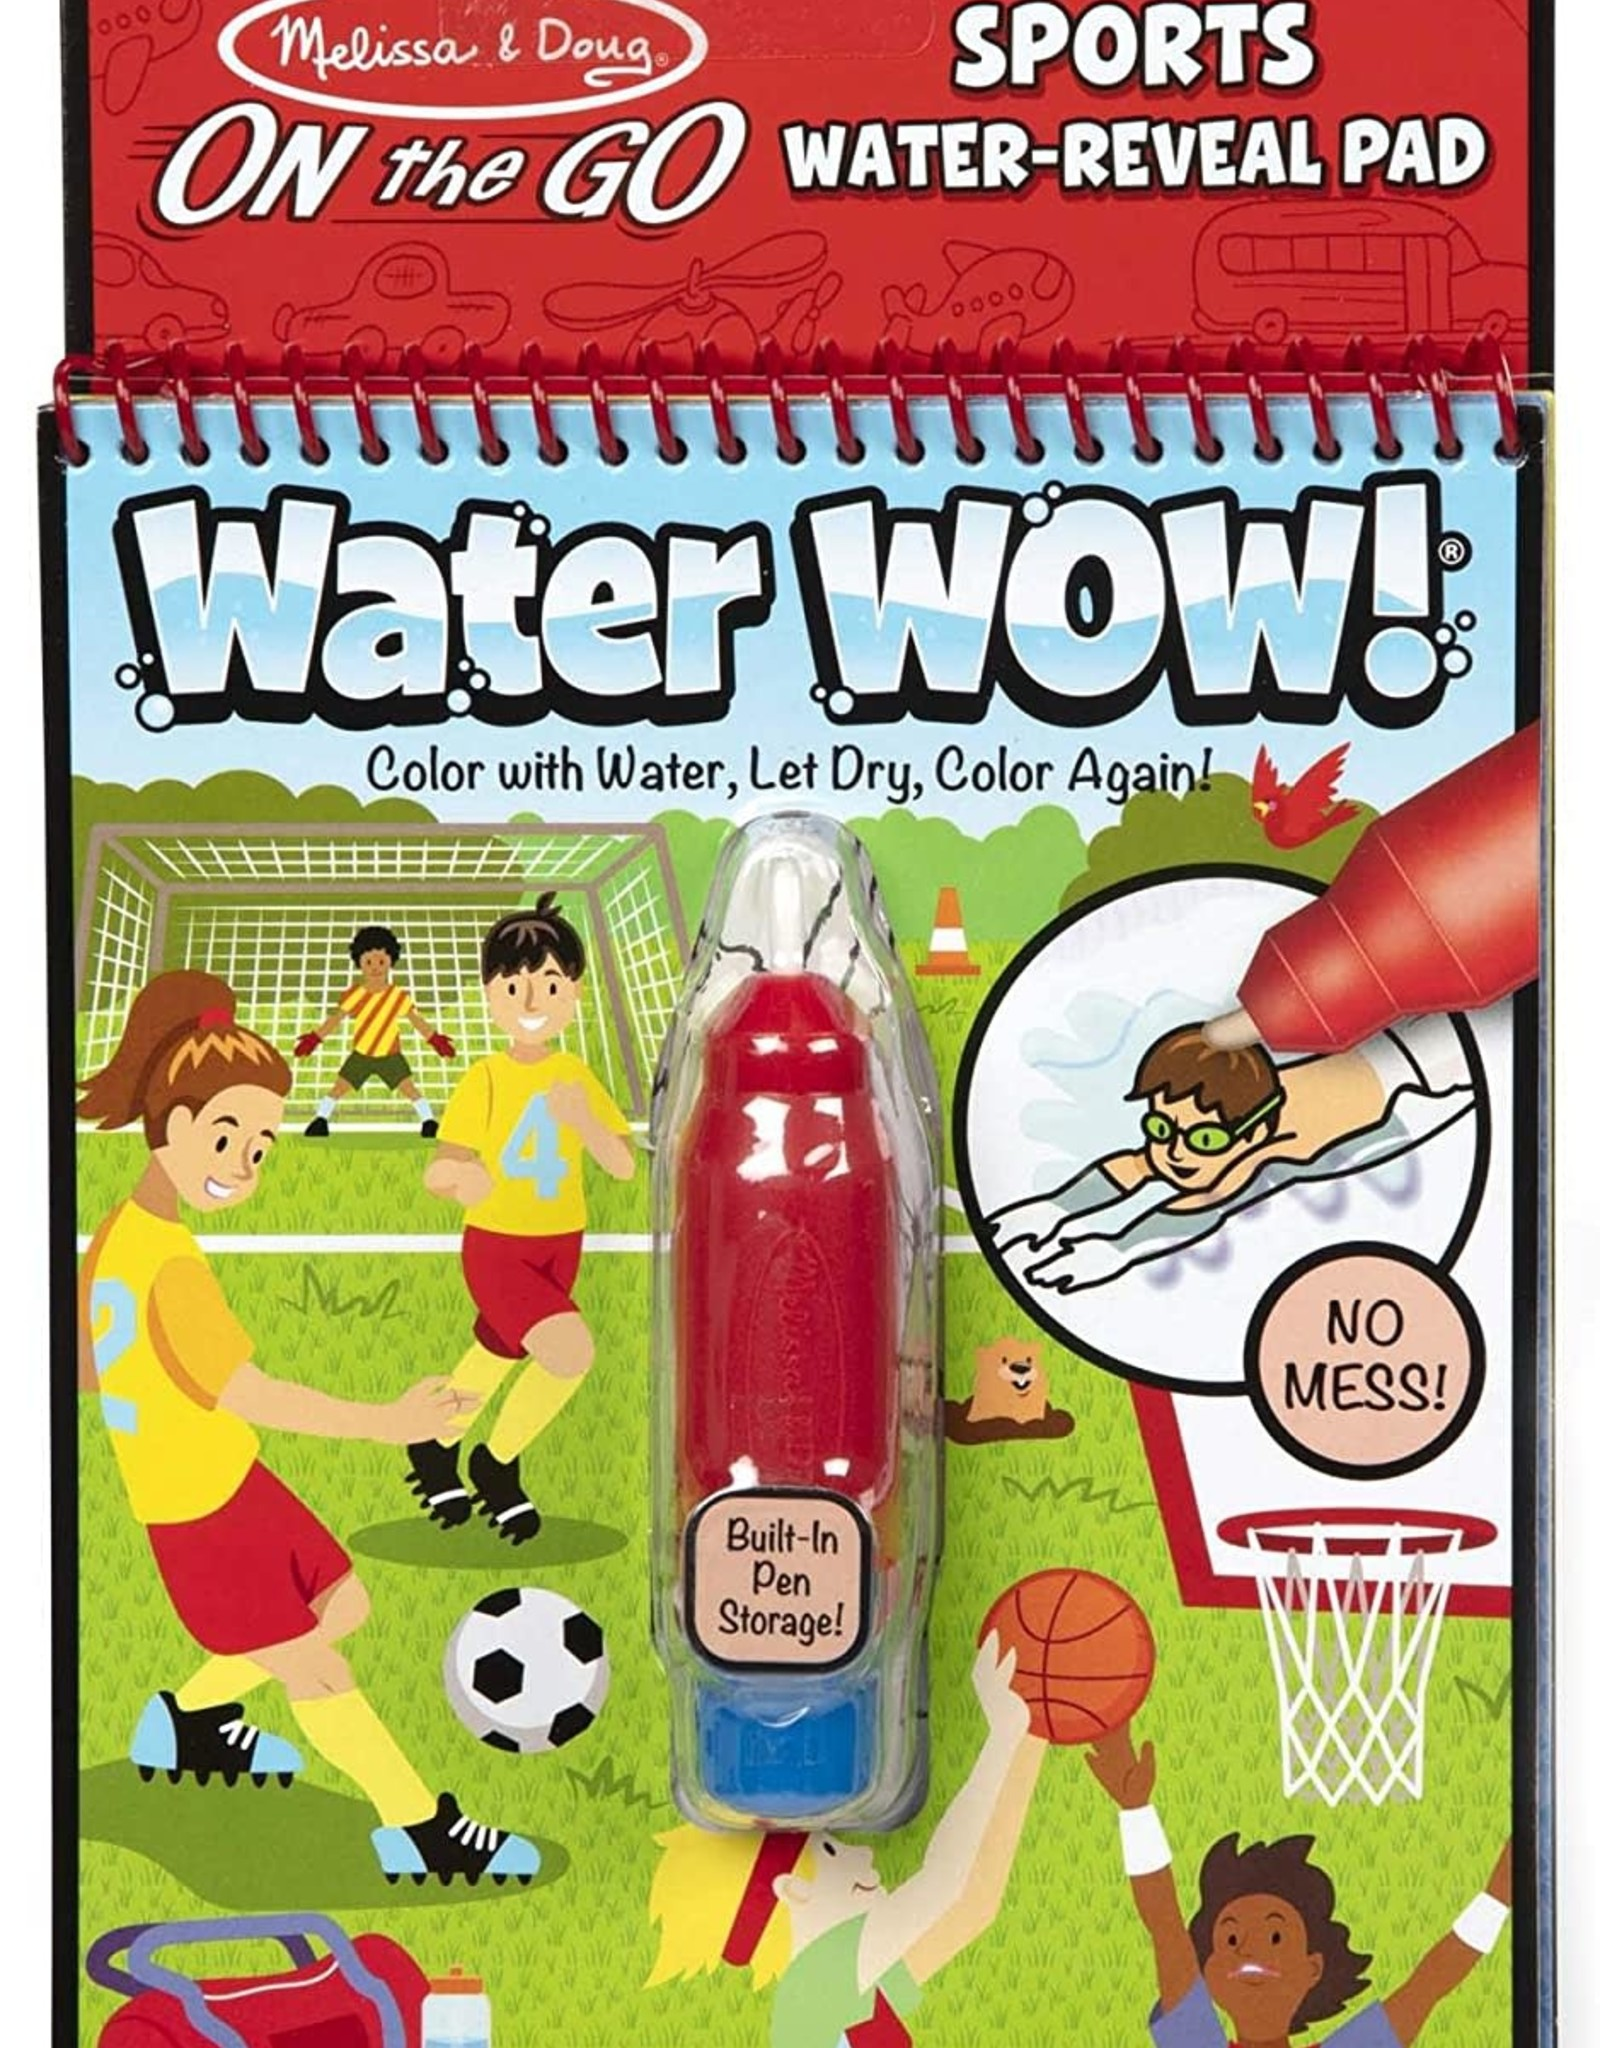 Melissa & Doug MD Water WOW Sports